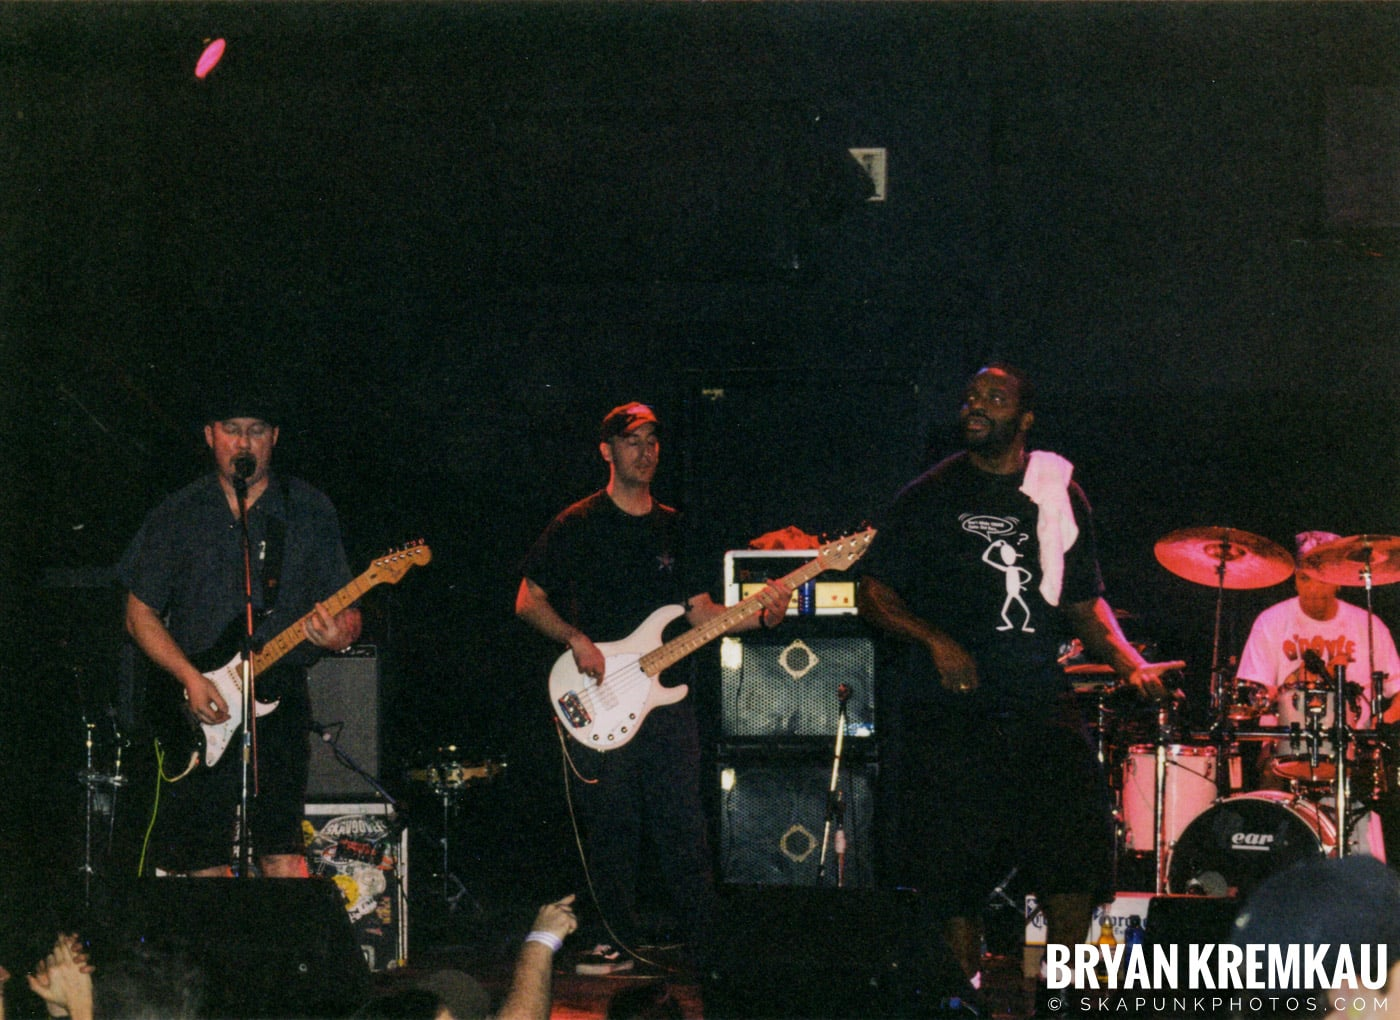 The Toasters @ The Chance, Poughkeepsie, NY - 1.15.99 (1)